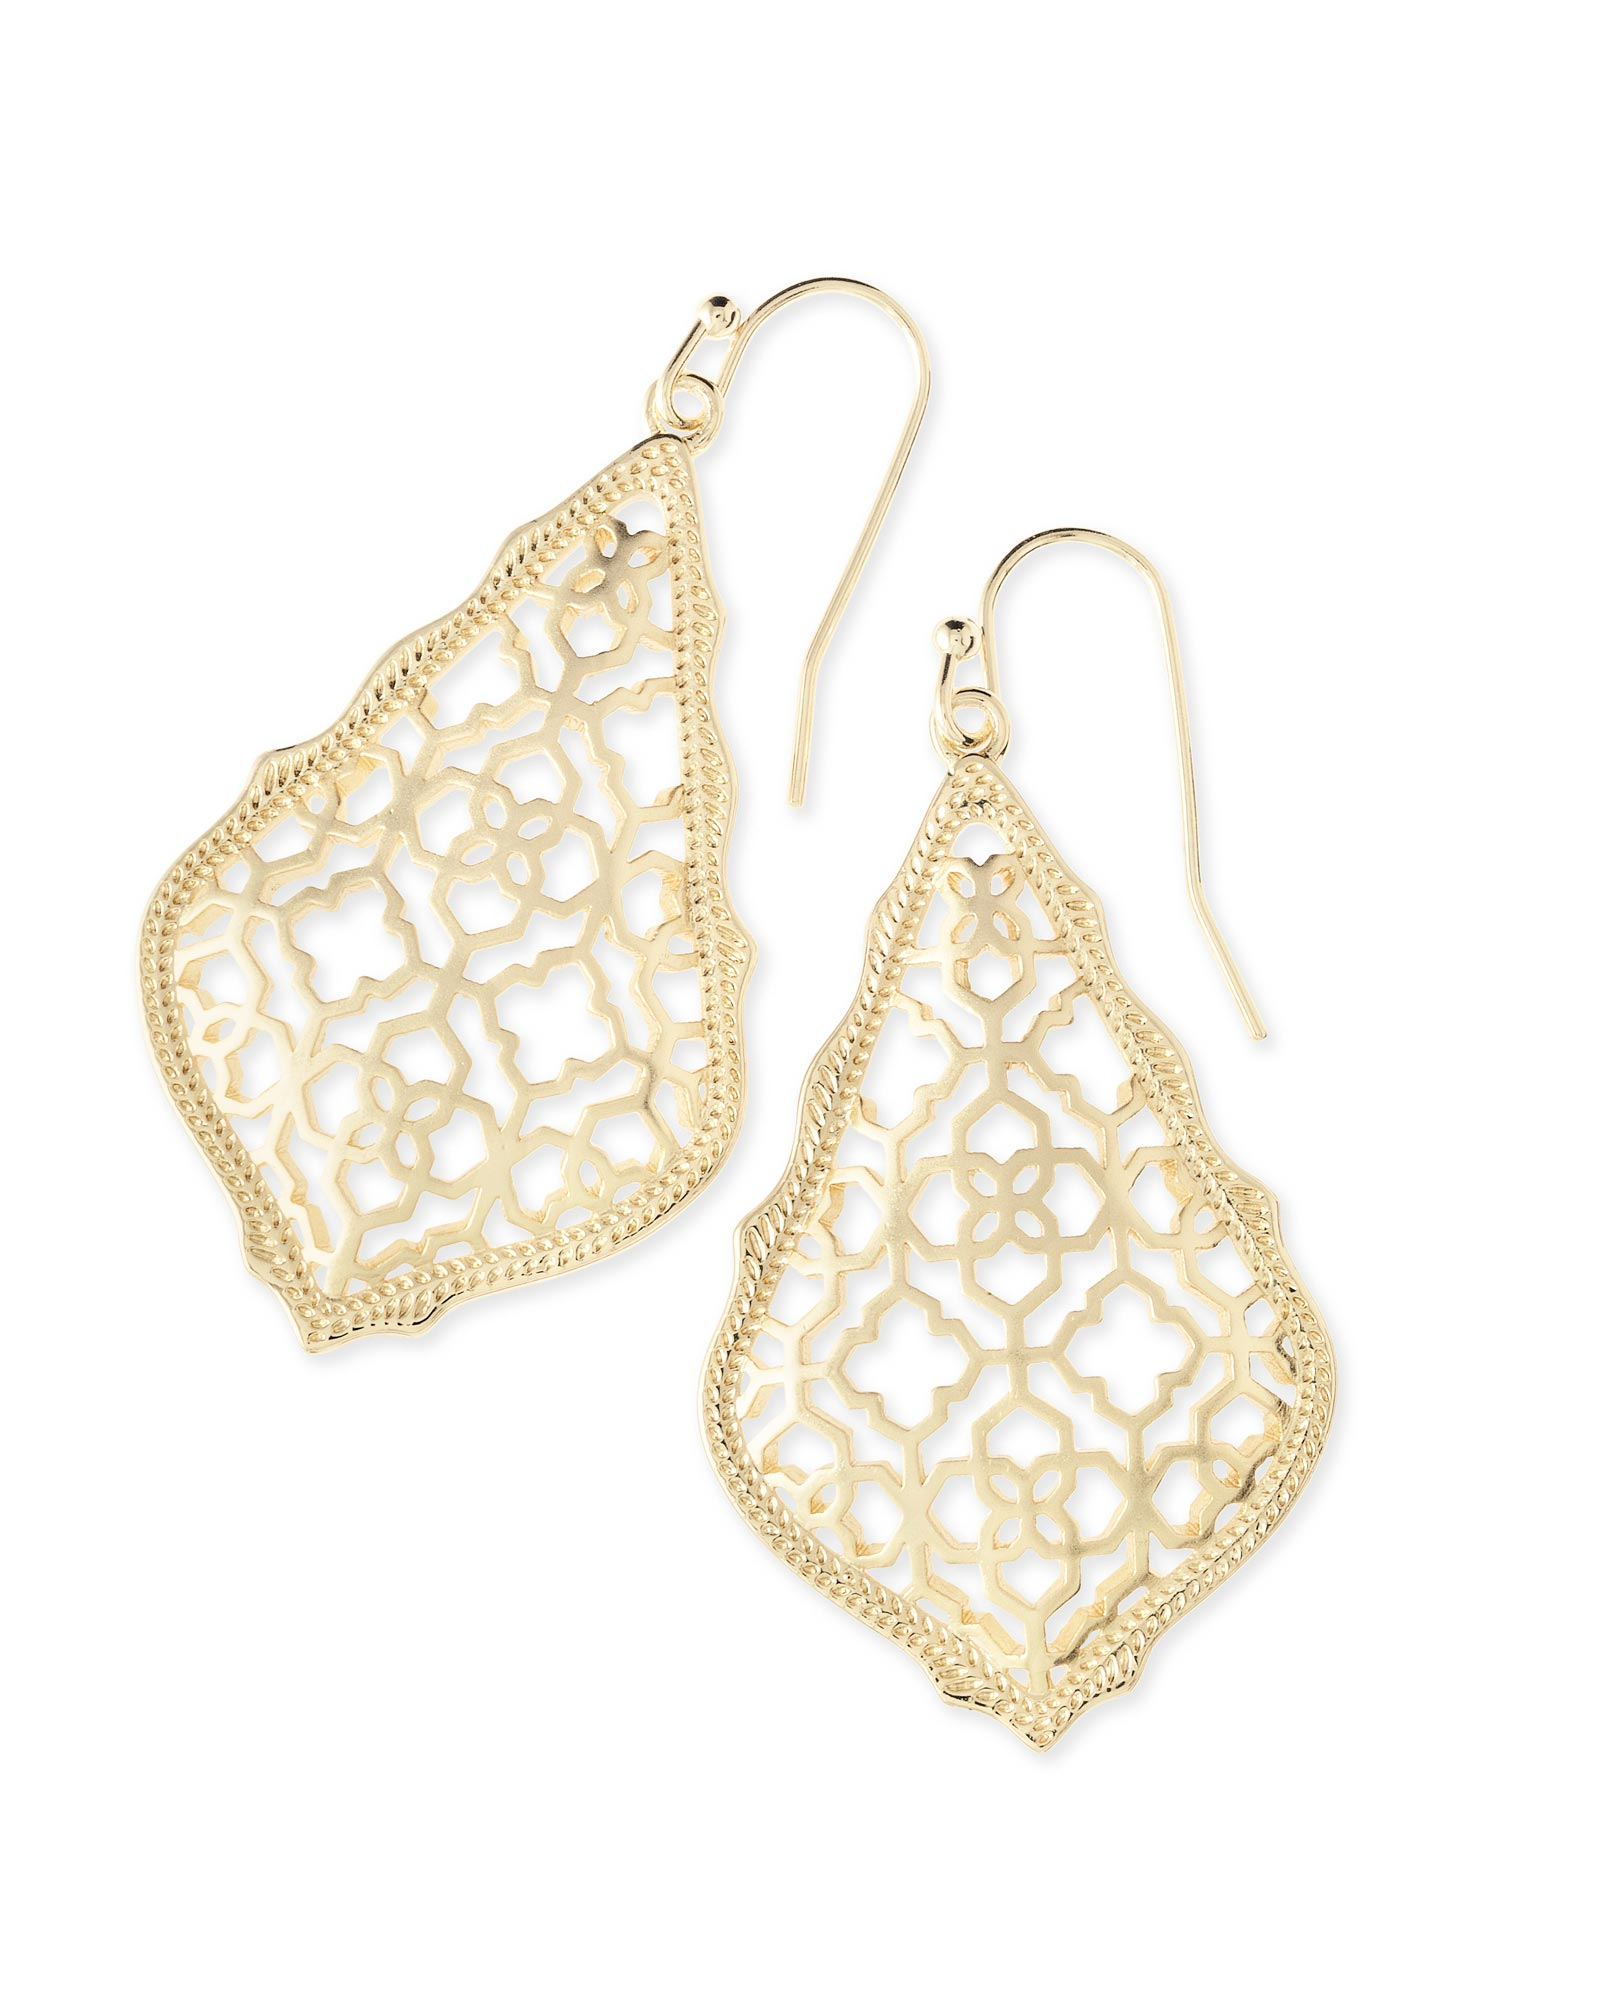 Kendra Scott - Loving these Addie Gold Drop earrings from Kendra Scott. They turn any look from simple to stunning, such a stylish statement! I don't think you can ever go wrong with classic Kendra Scott pieces!